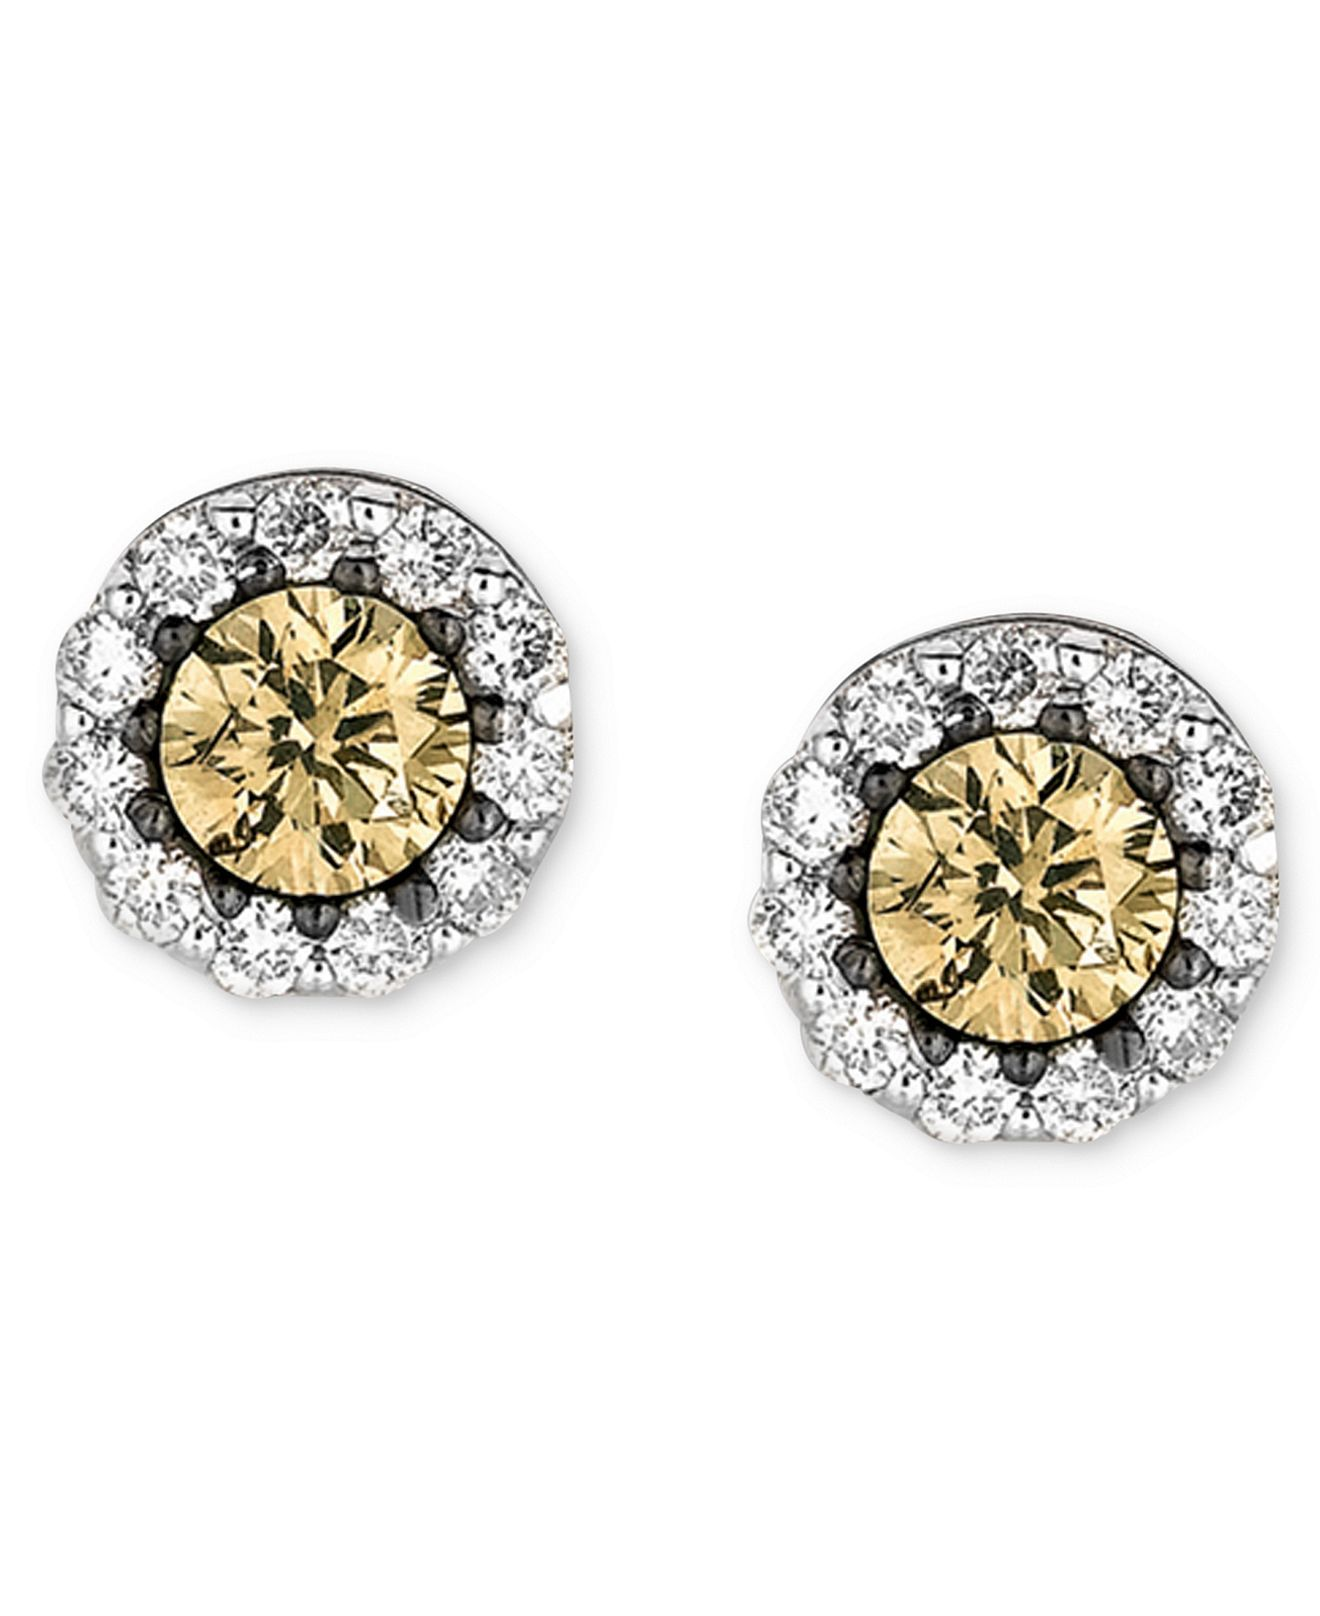 Le Vian White And Chocolate Diamond Stud Earrings In 14k Gold 1 2 Ct T W